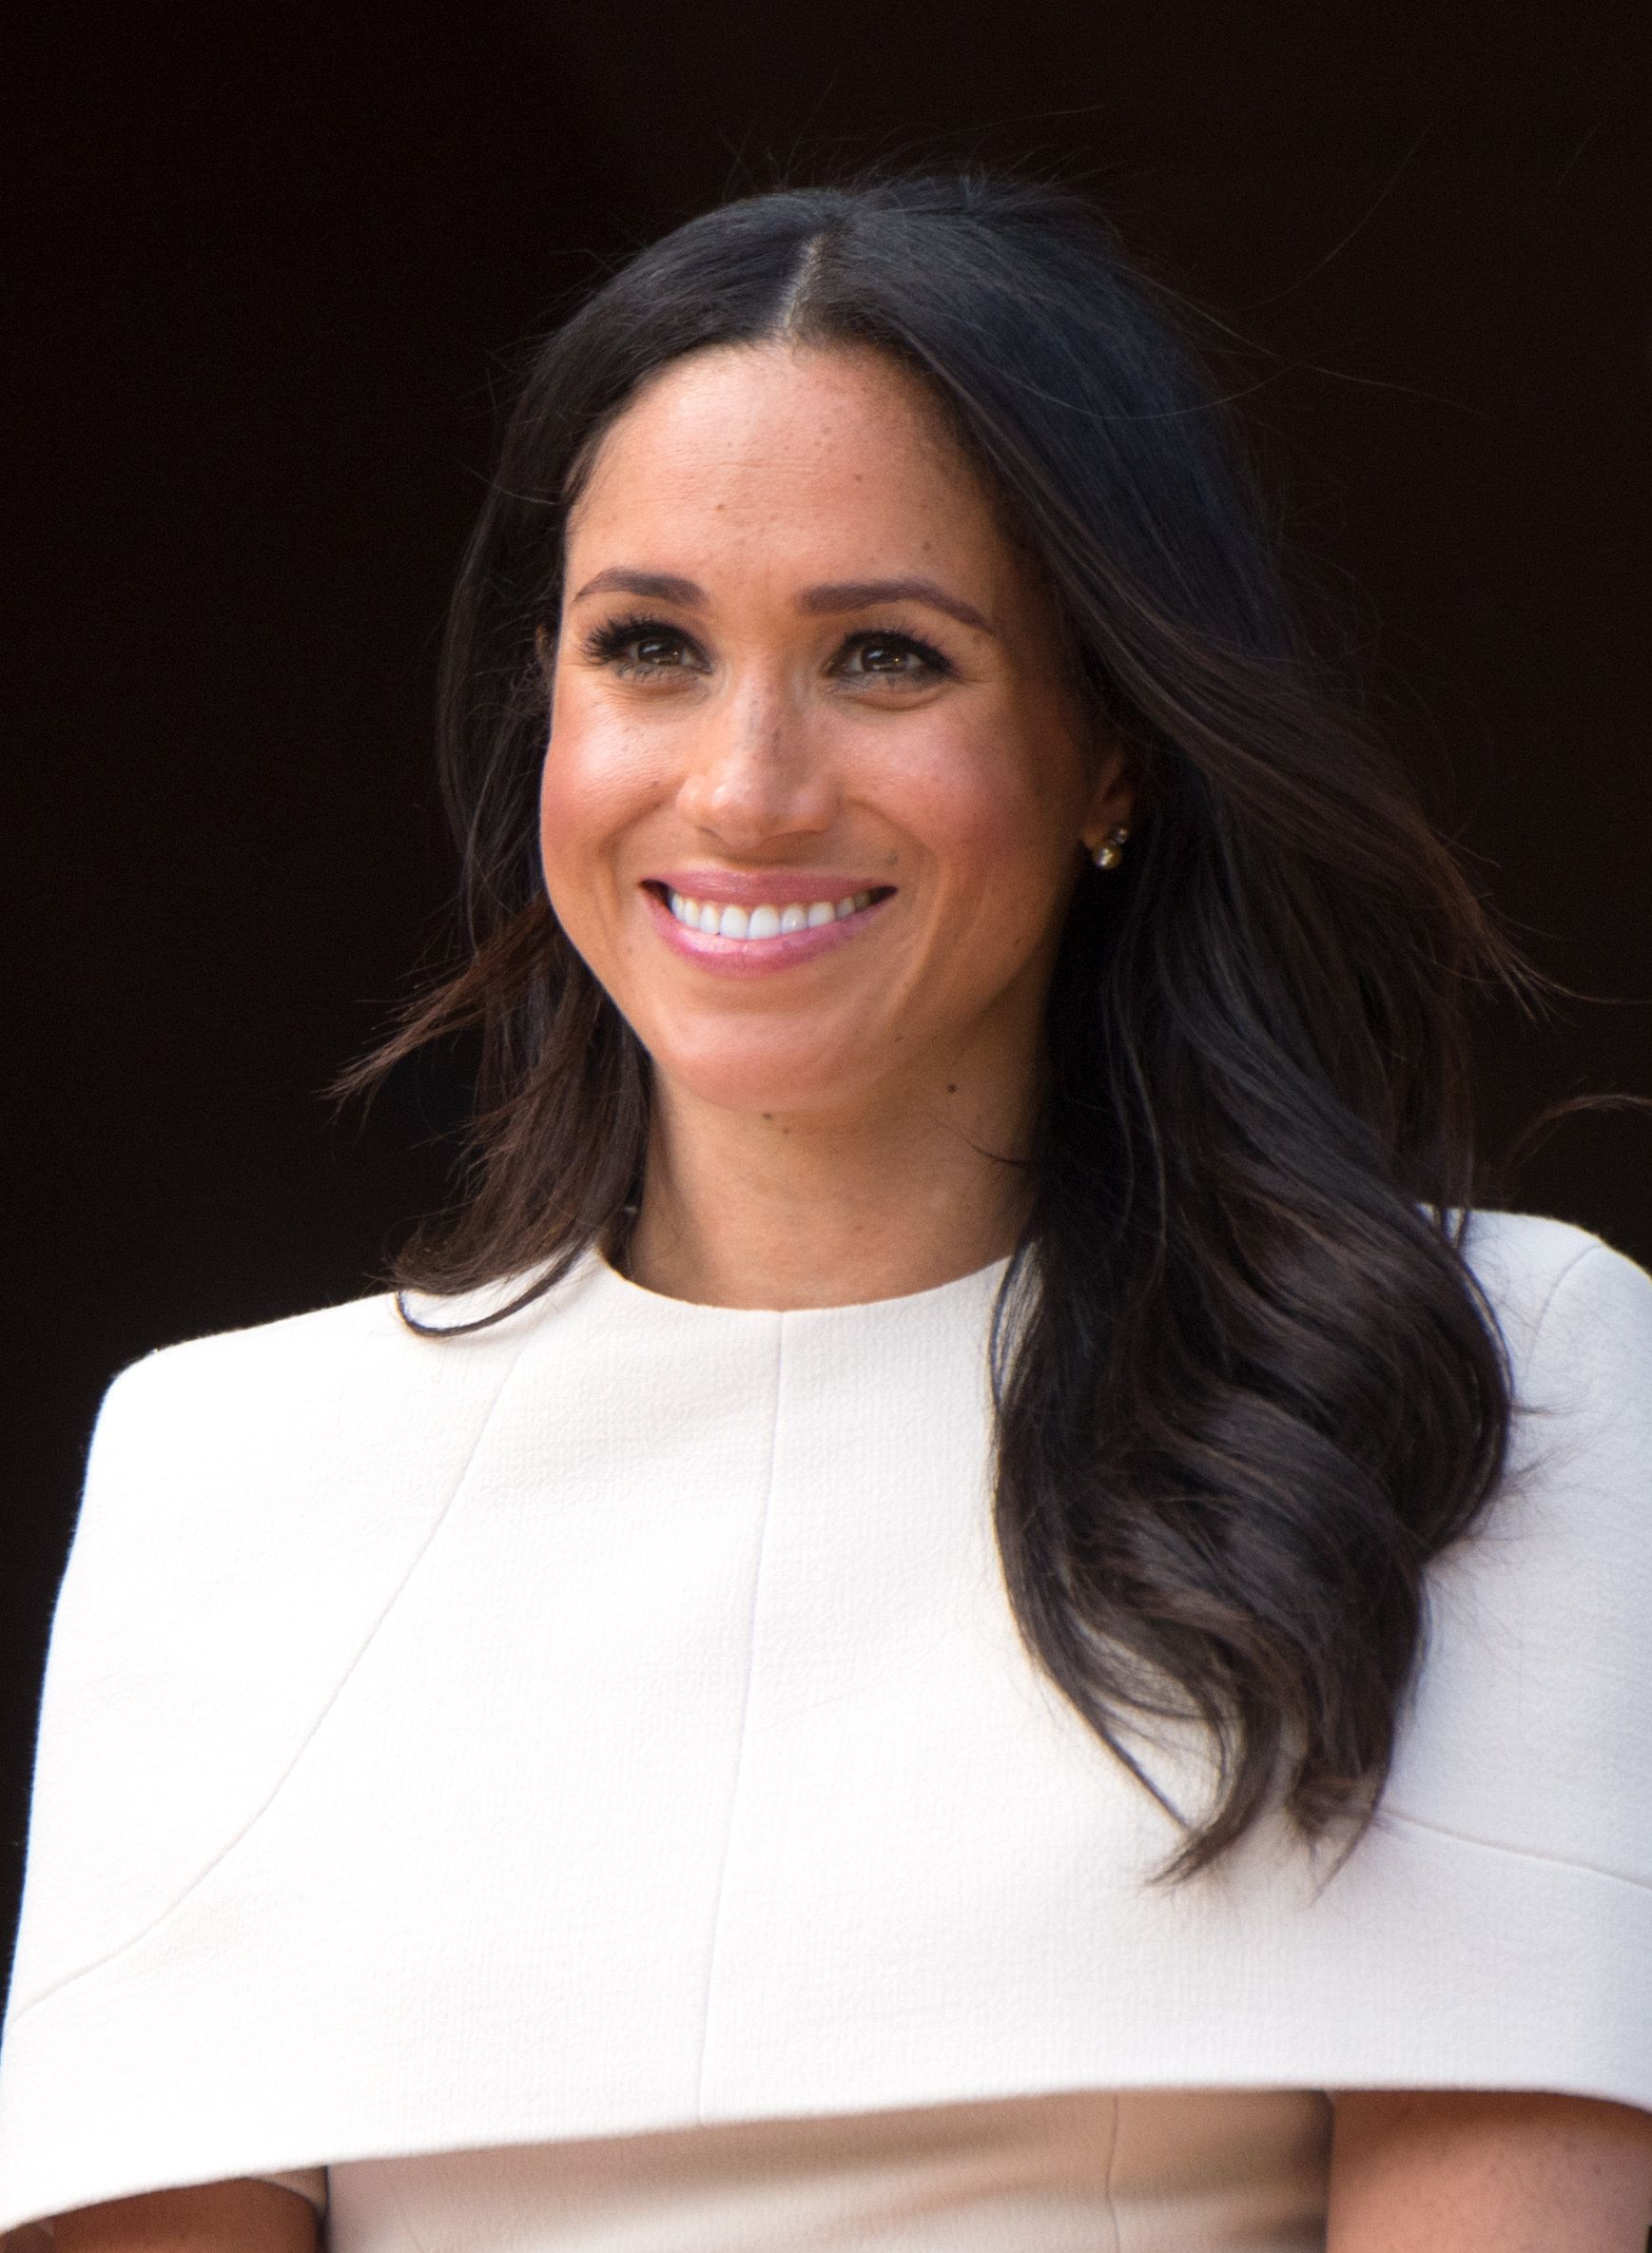 It Sounds Like Meghan Markle Has A Slight British Accent